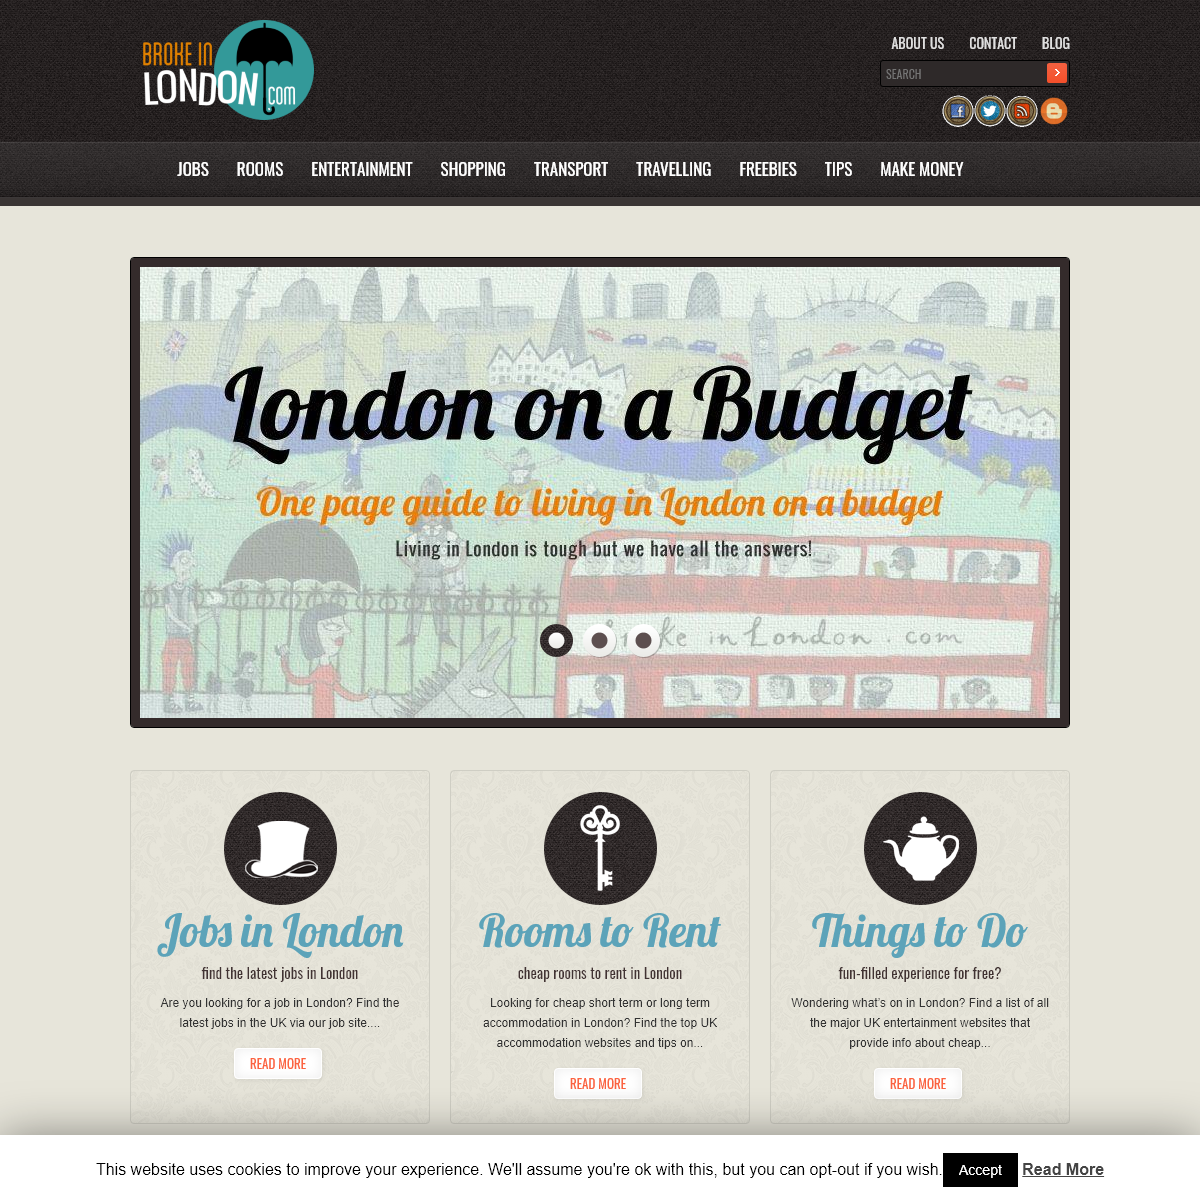 Jobs,Rooms and Links for a Budget Life in London - Broke in London